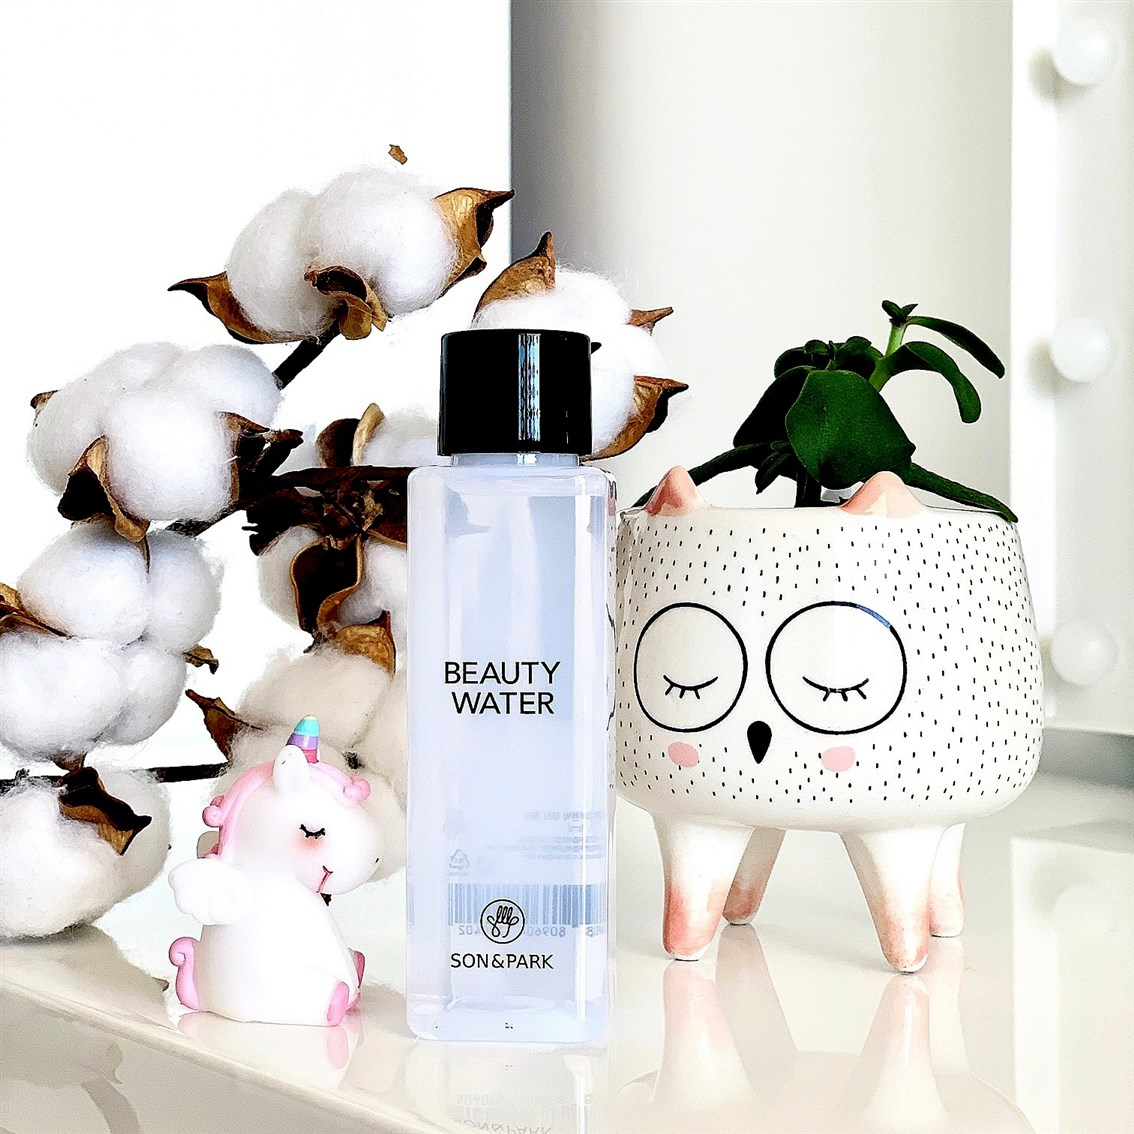 Son & Park Beauty Water blog